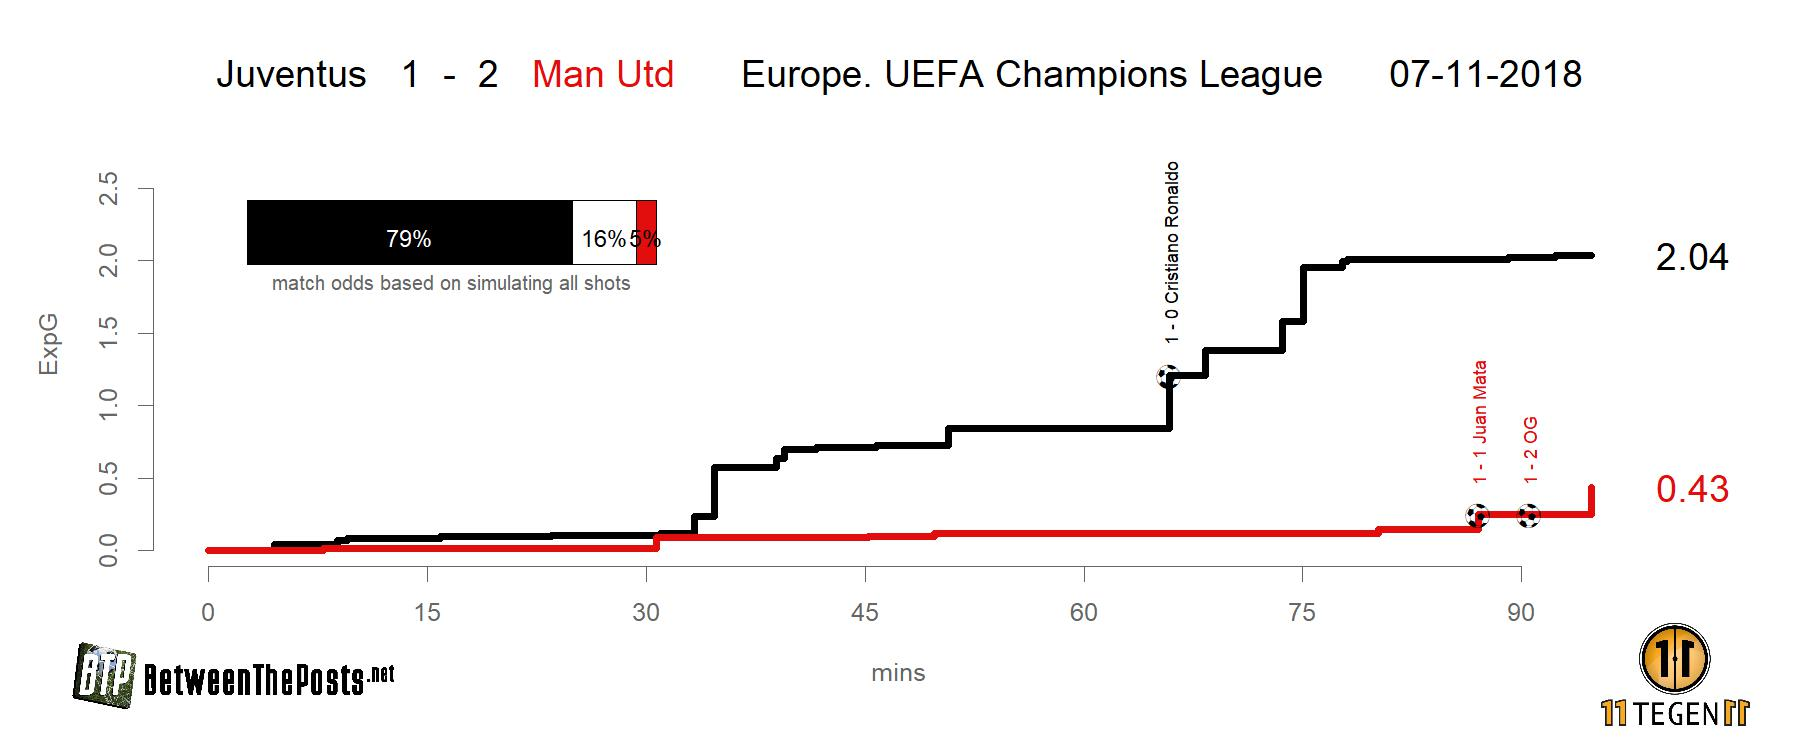 Expected goals plot Juventus - Manchester United 1-2